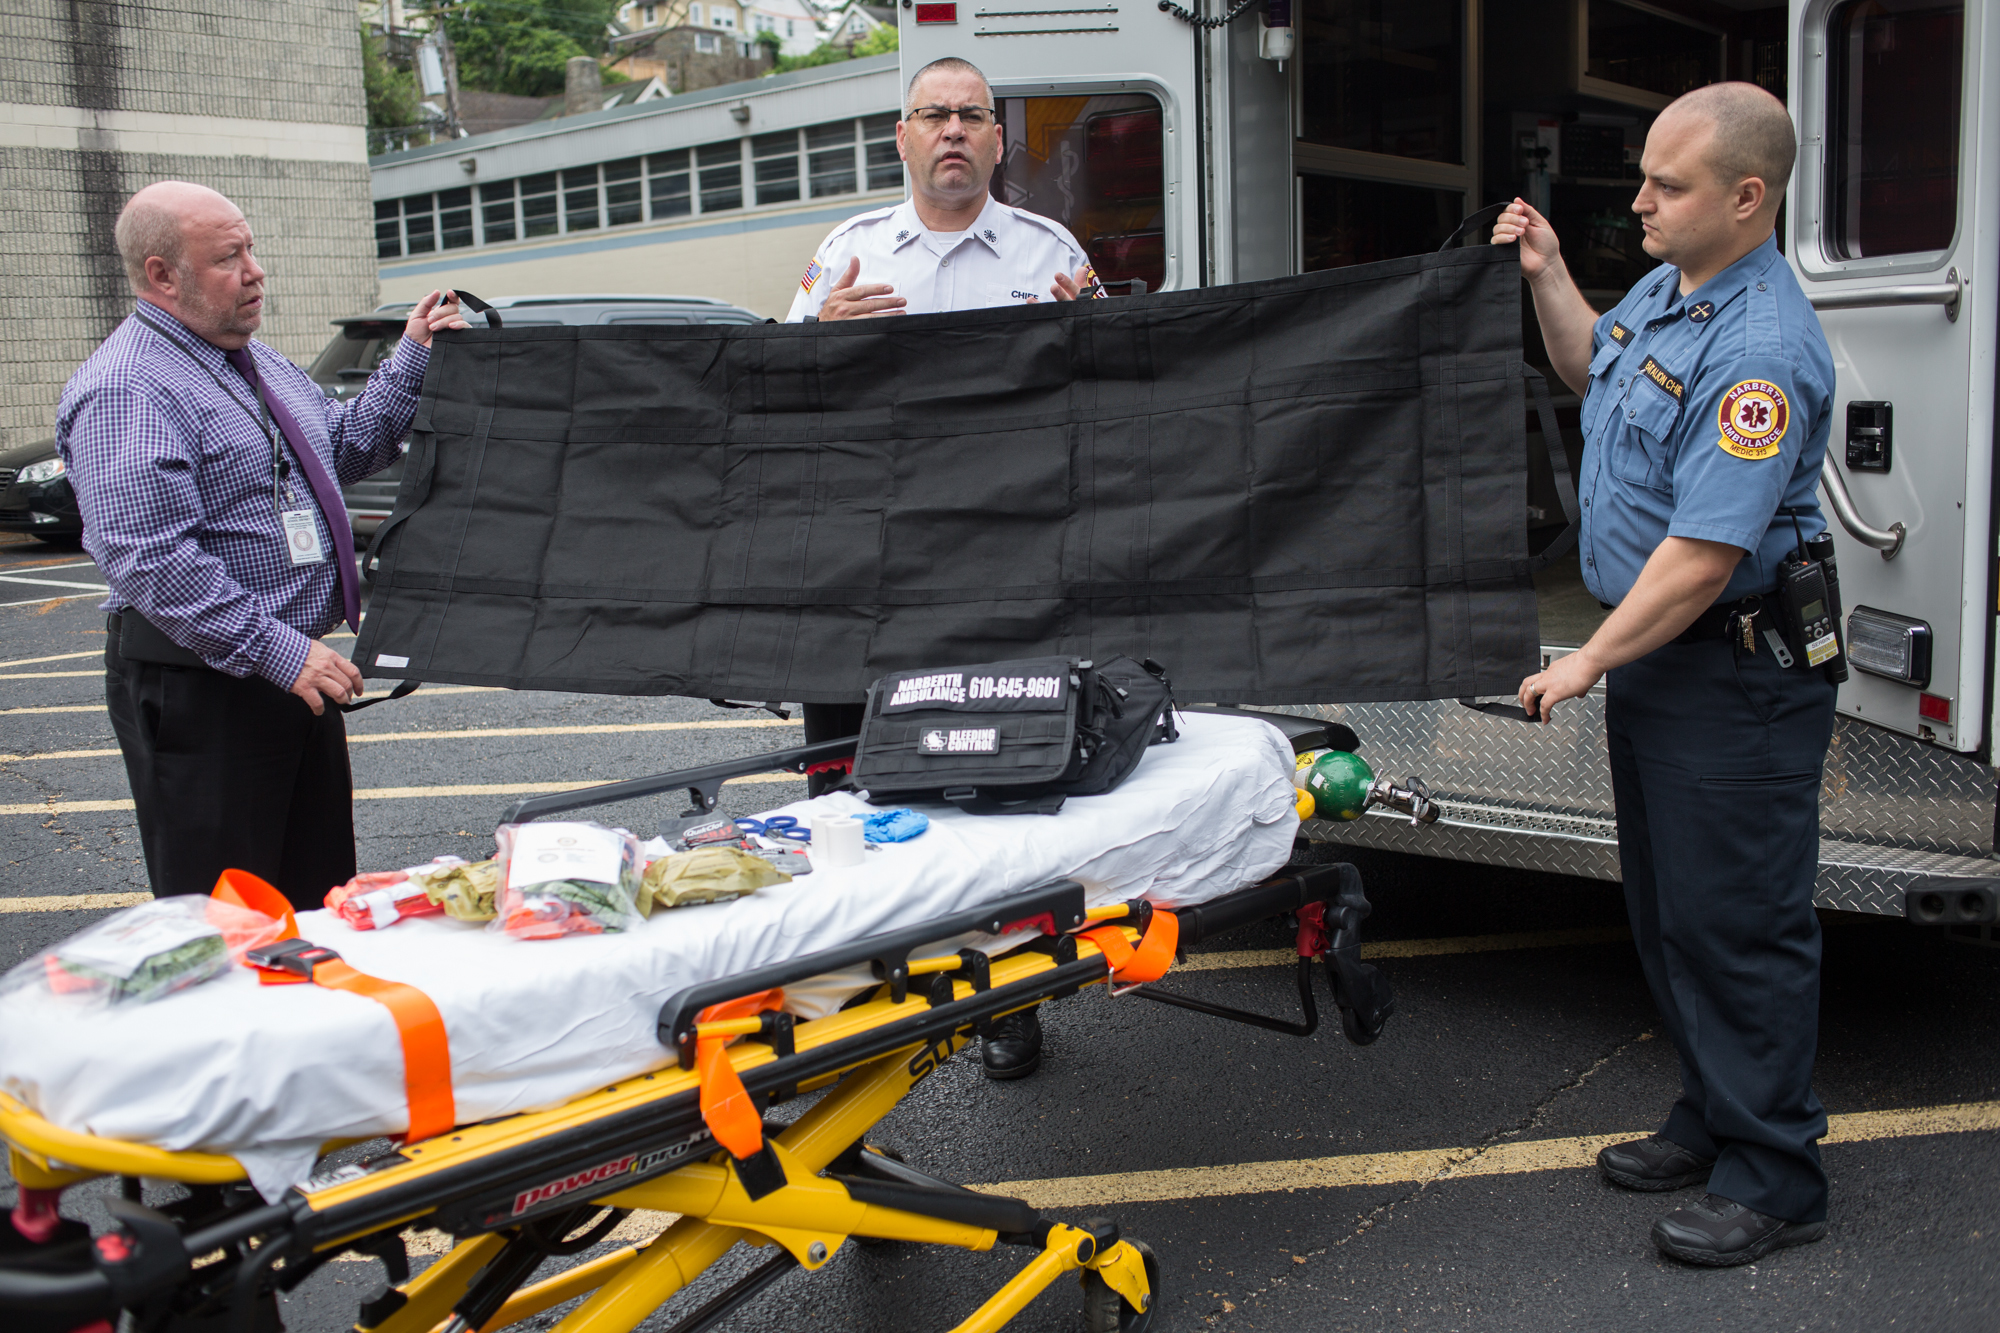 Christopher Flanagan, chief of Narberth Ambulance Company (center), holds up the foldable stretcher included in the trauma kit with assistance from Dennis Witt (left) and Jonathan Serbin.